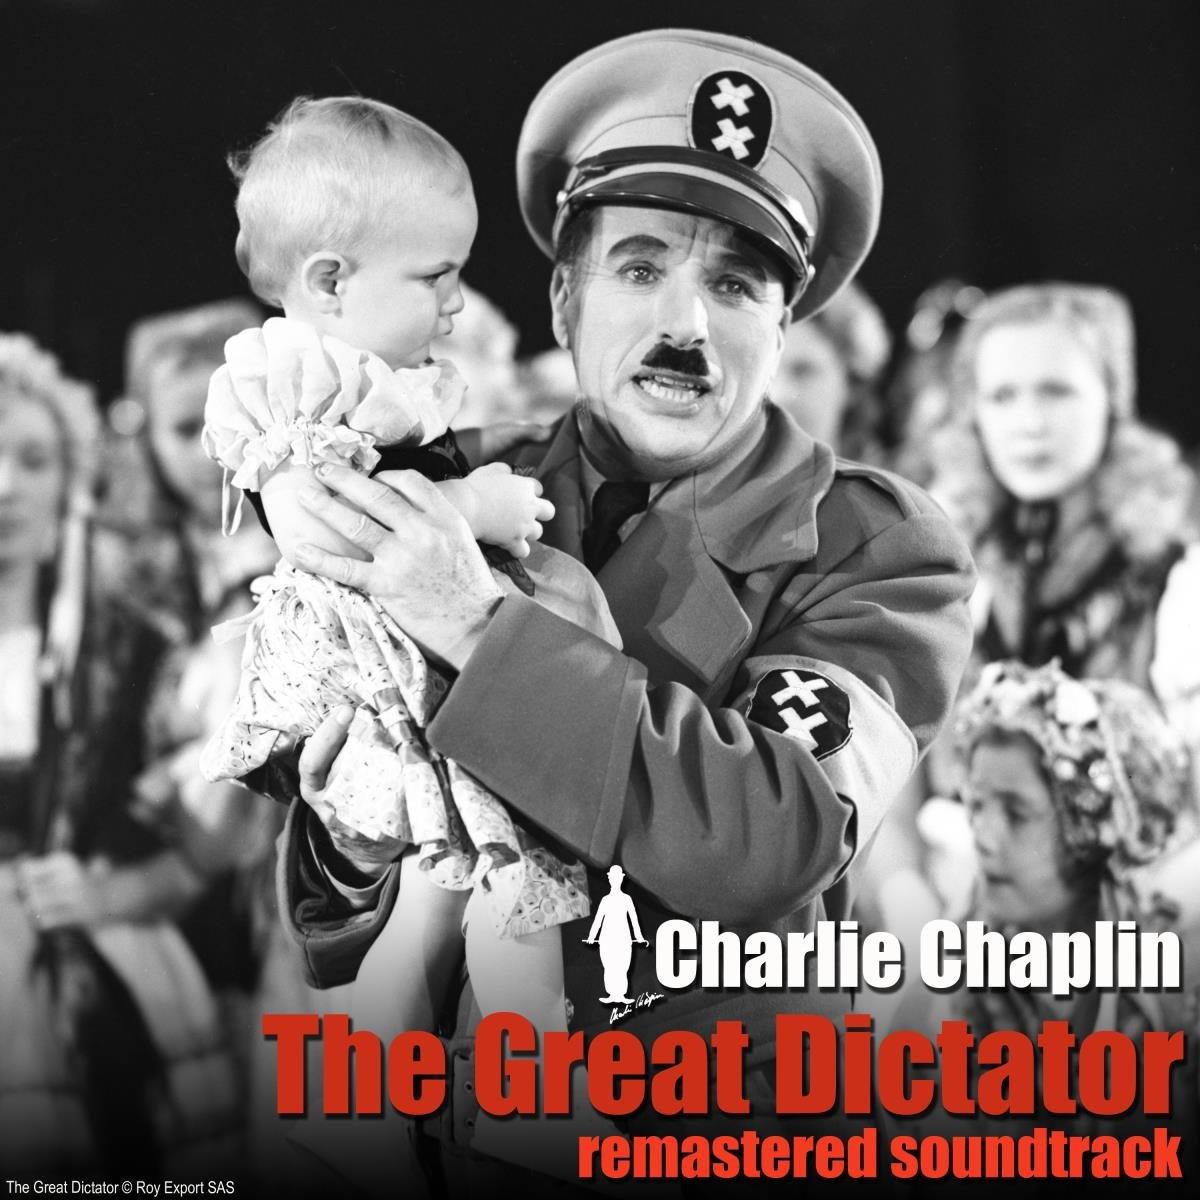 Charlie Chaplin - The Great Dictator Remastered (2020) CD